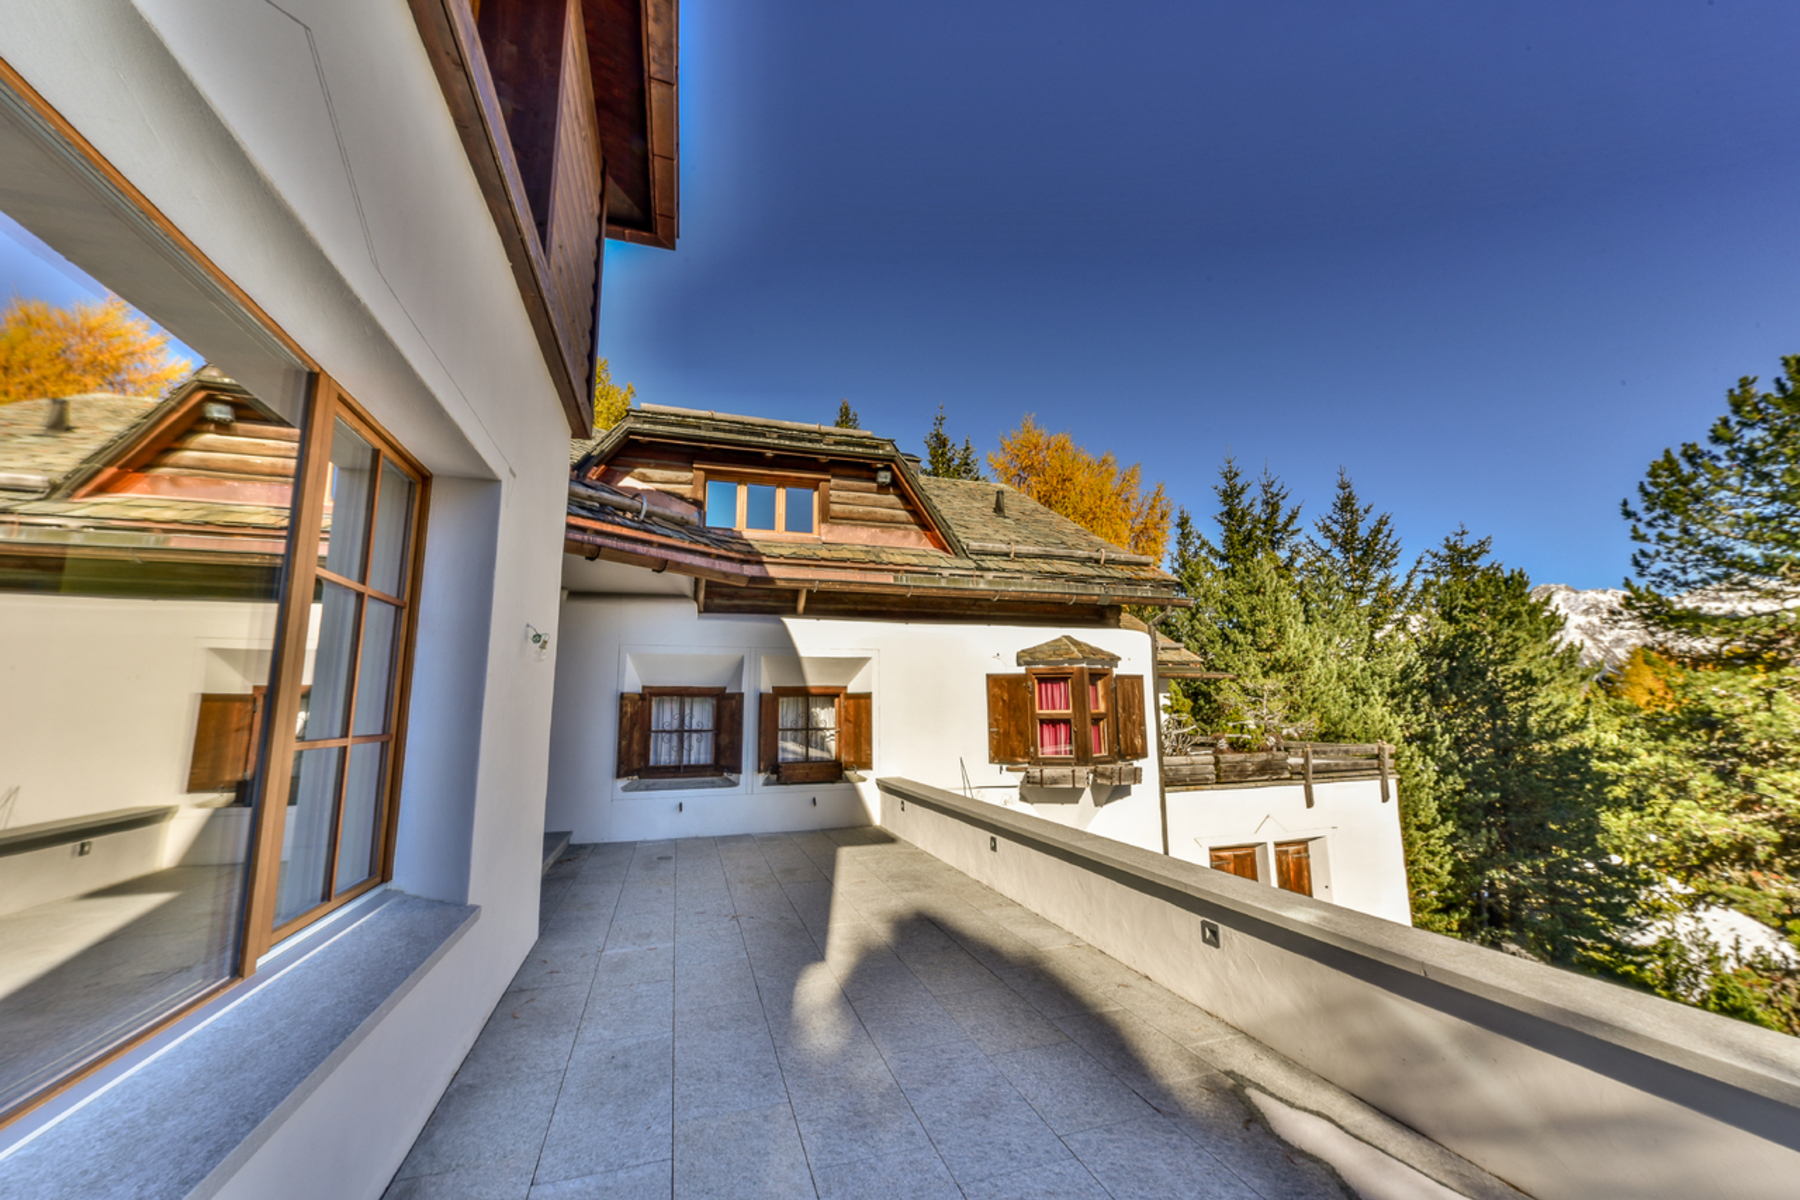 Single Family Home for Sale at Luxurious villa on the Suvretta hillside St. Moritz, Grisons, 7500 Switzerland